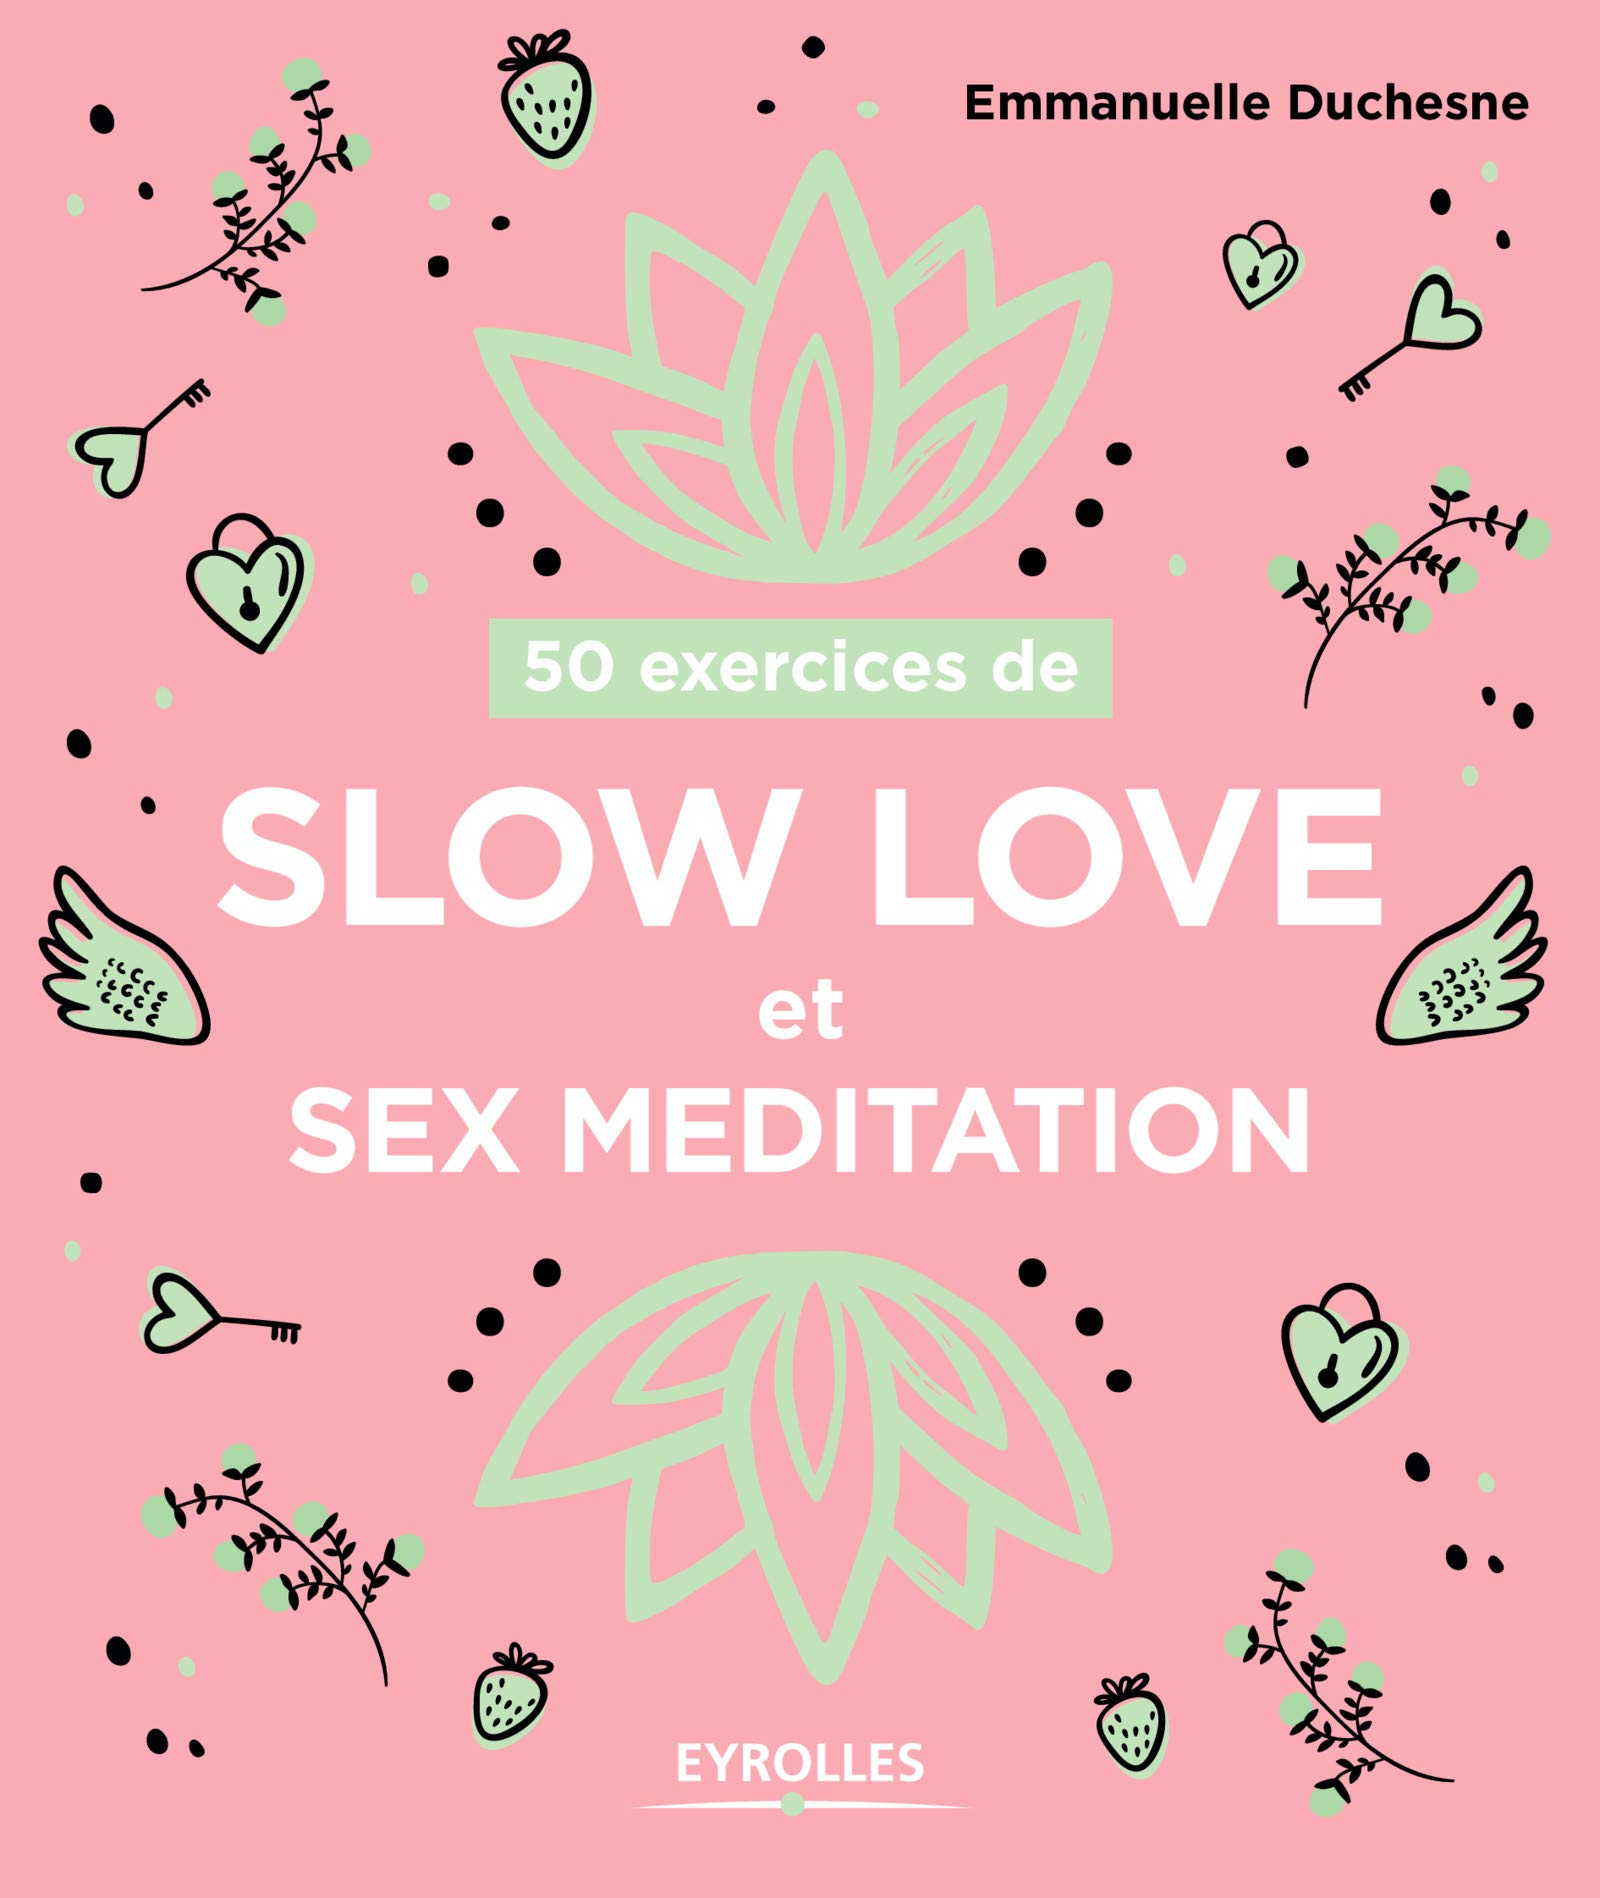 50 exercices de Slow love